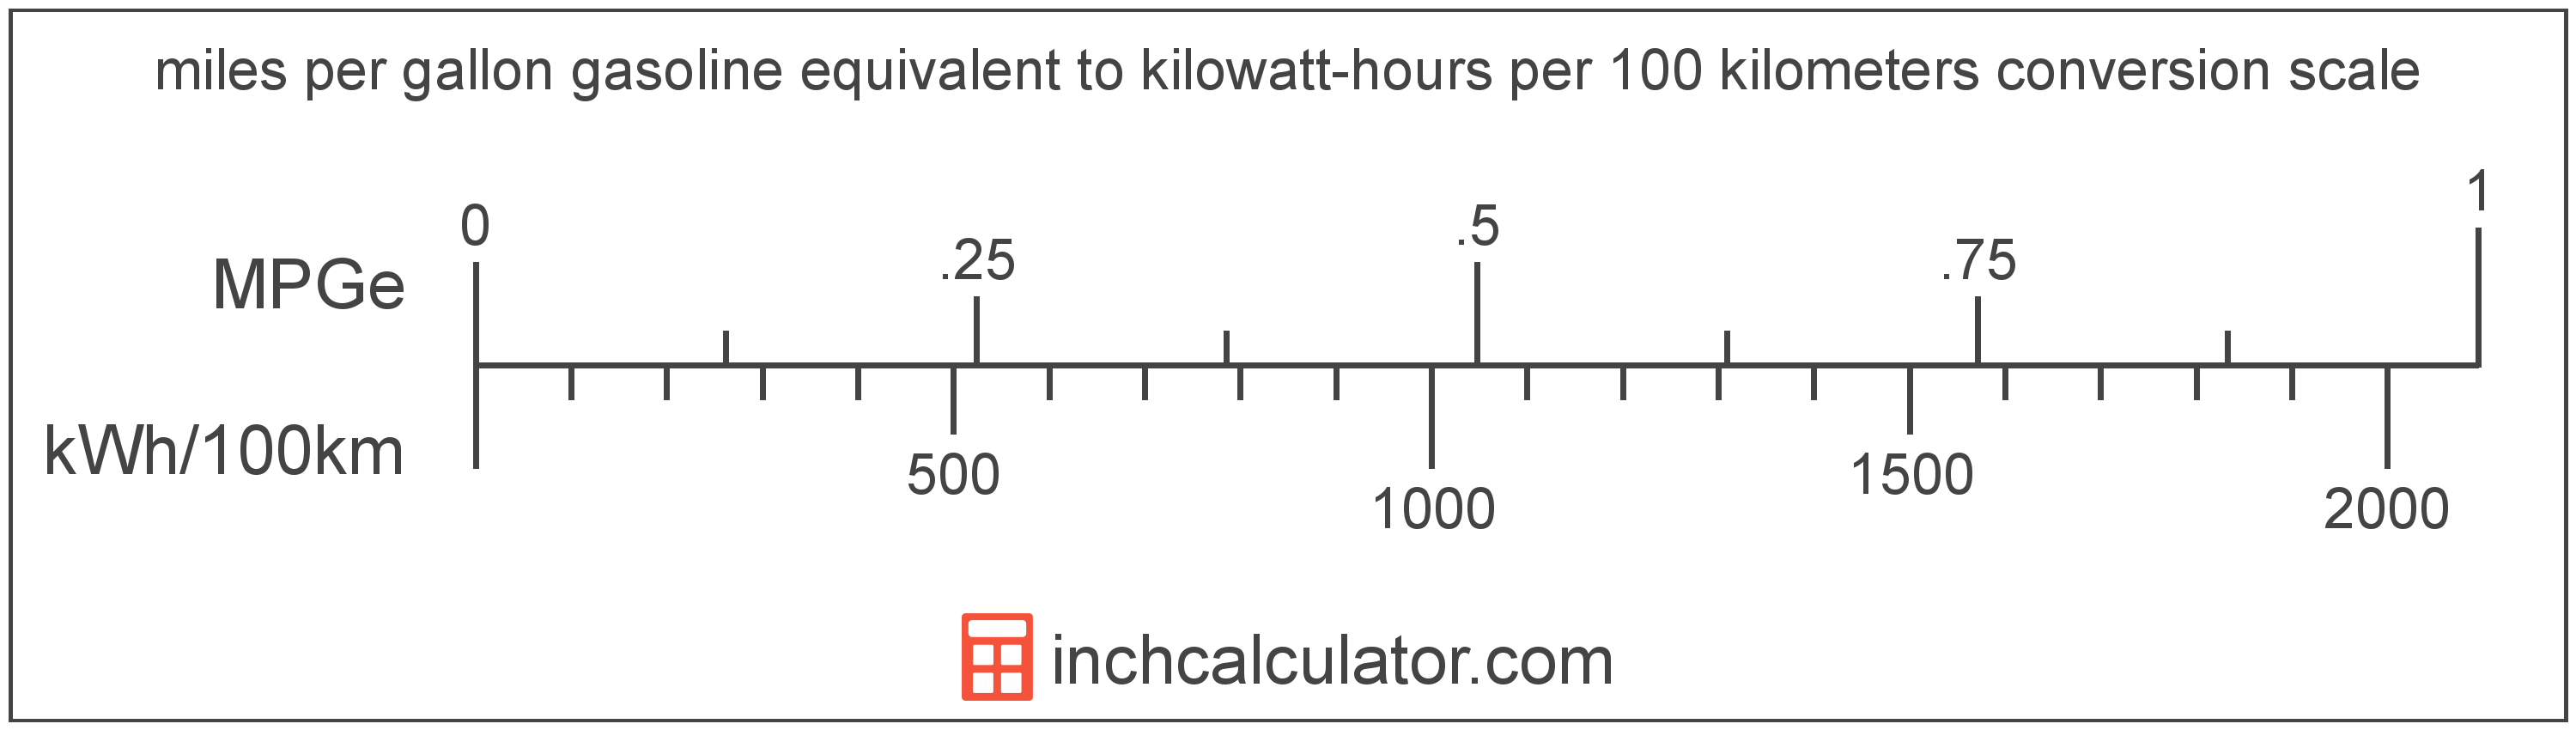 conversion scale showing miles per gallon gasoline equivalent and equivalent kilowatt-hours per 100 kilometers electric car efficiency values